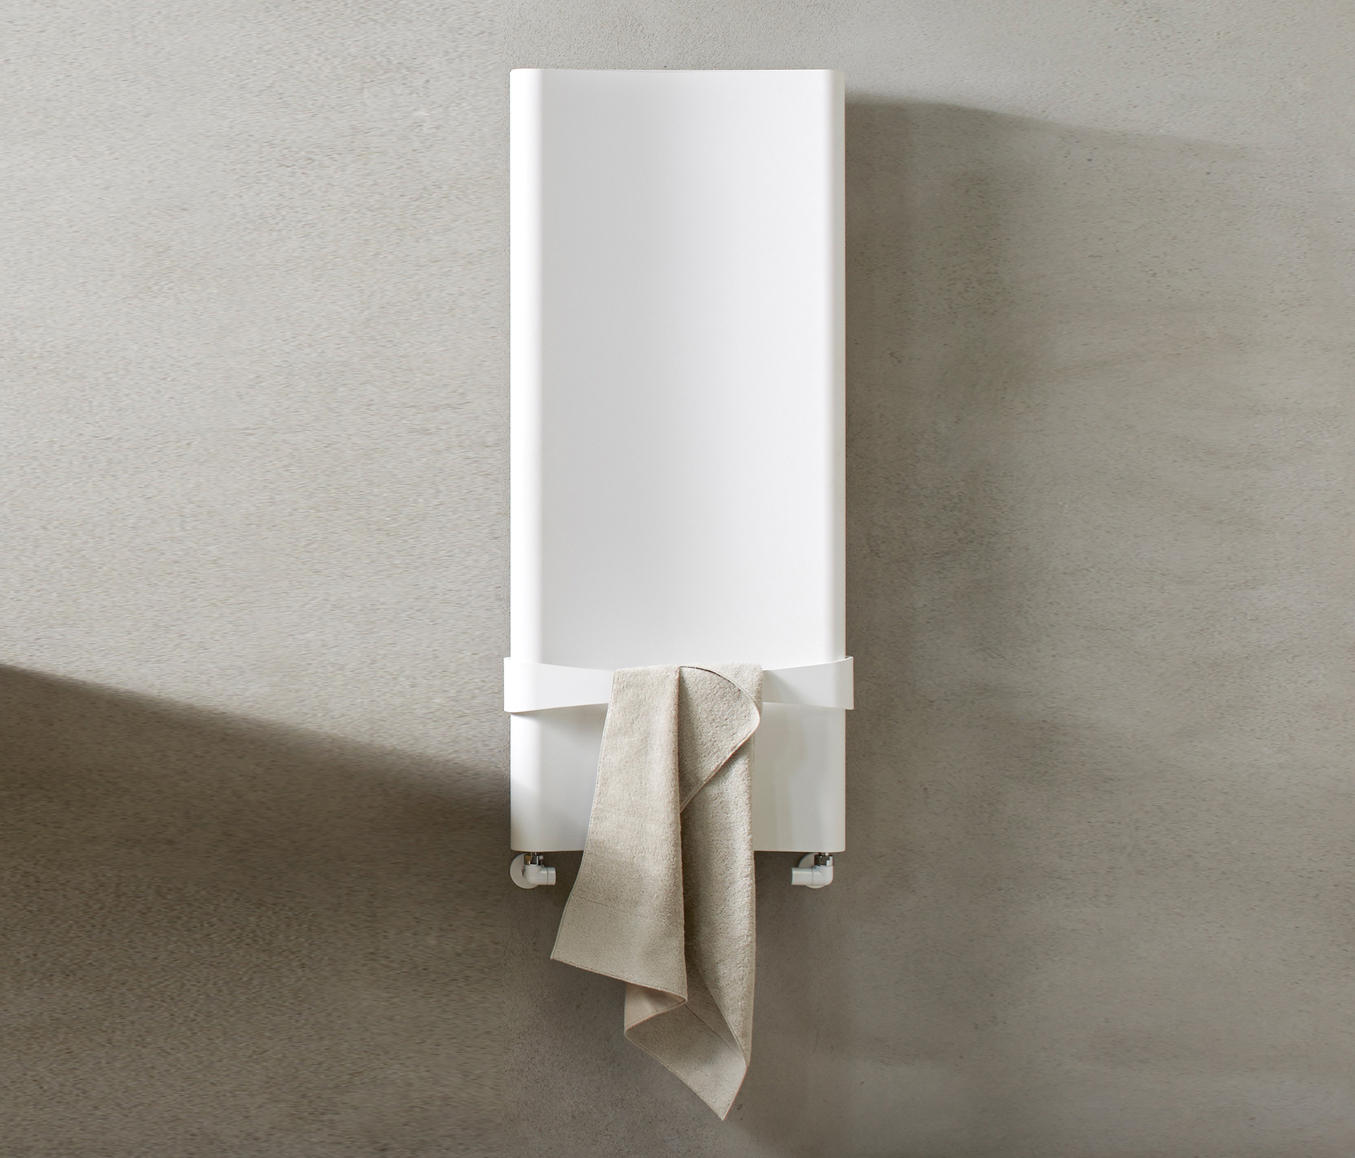 Bent Bagno Radiators From Caleido Architonic